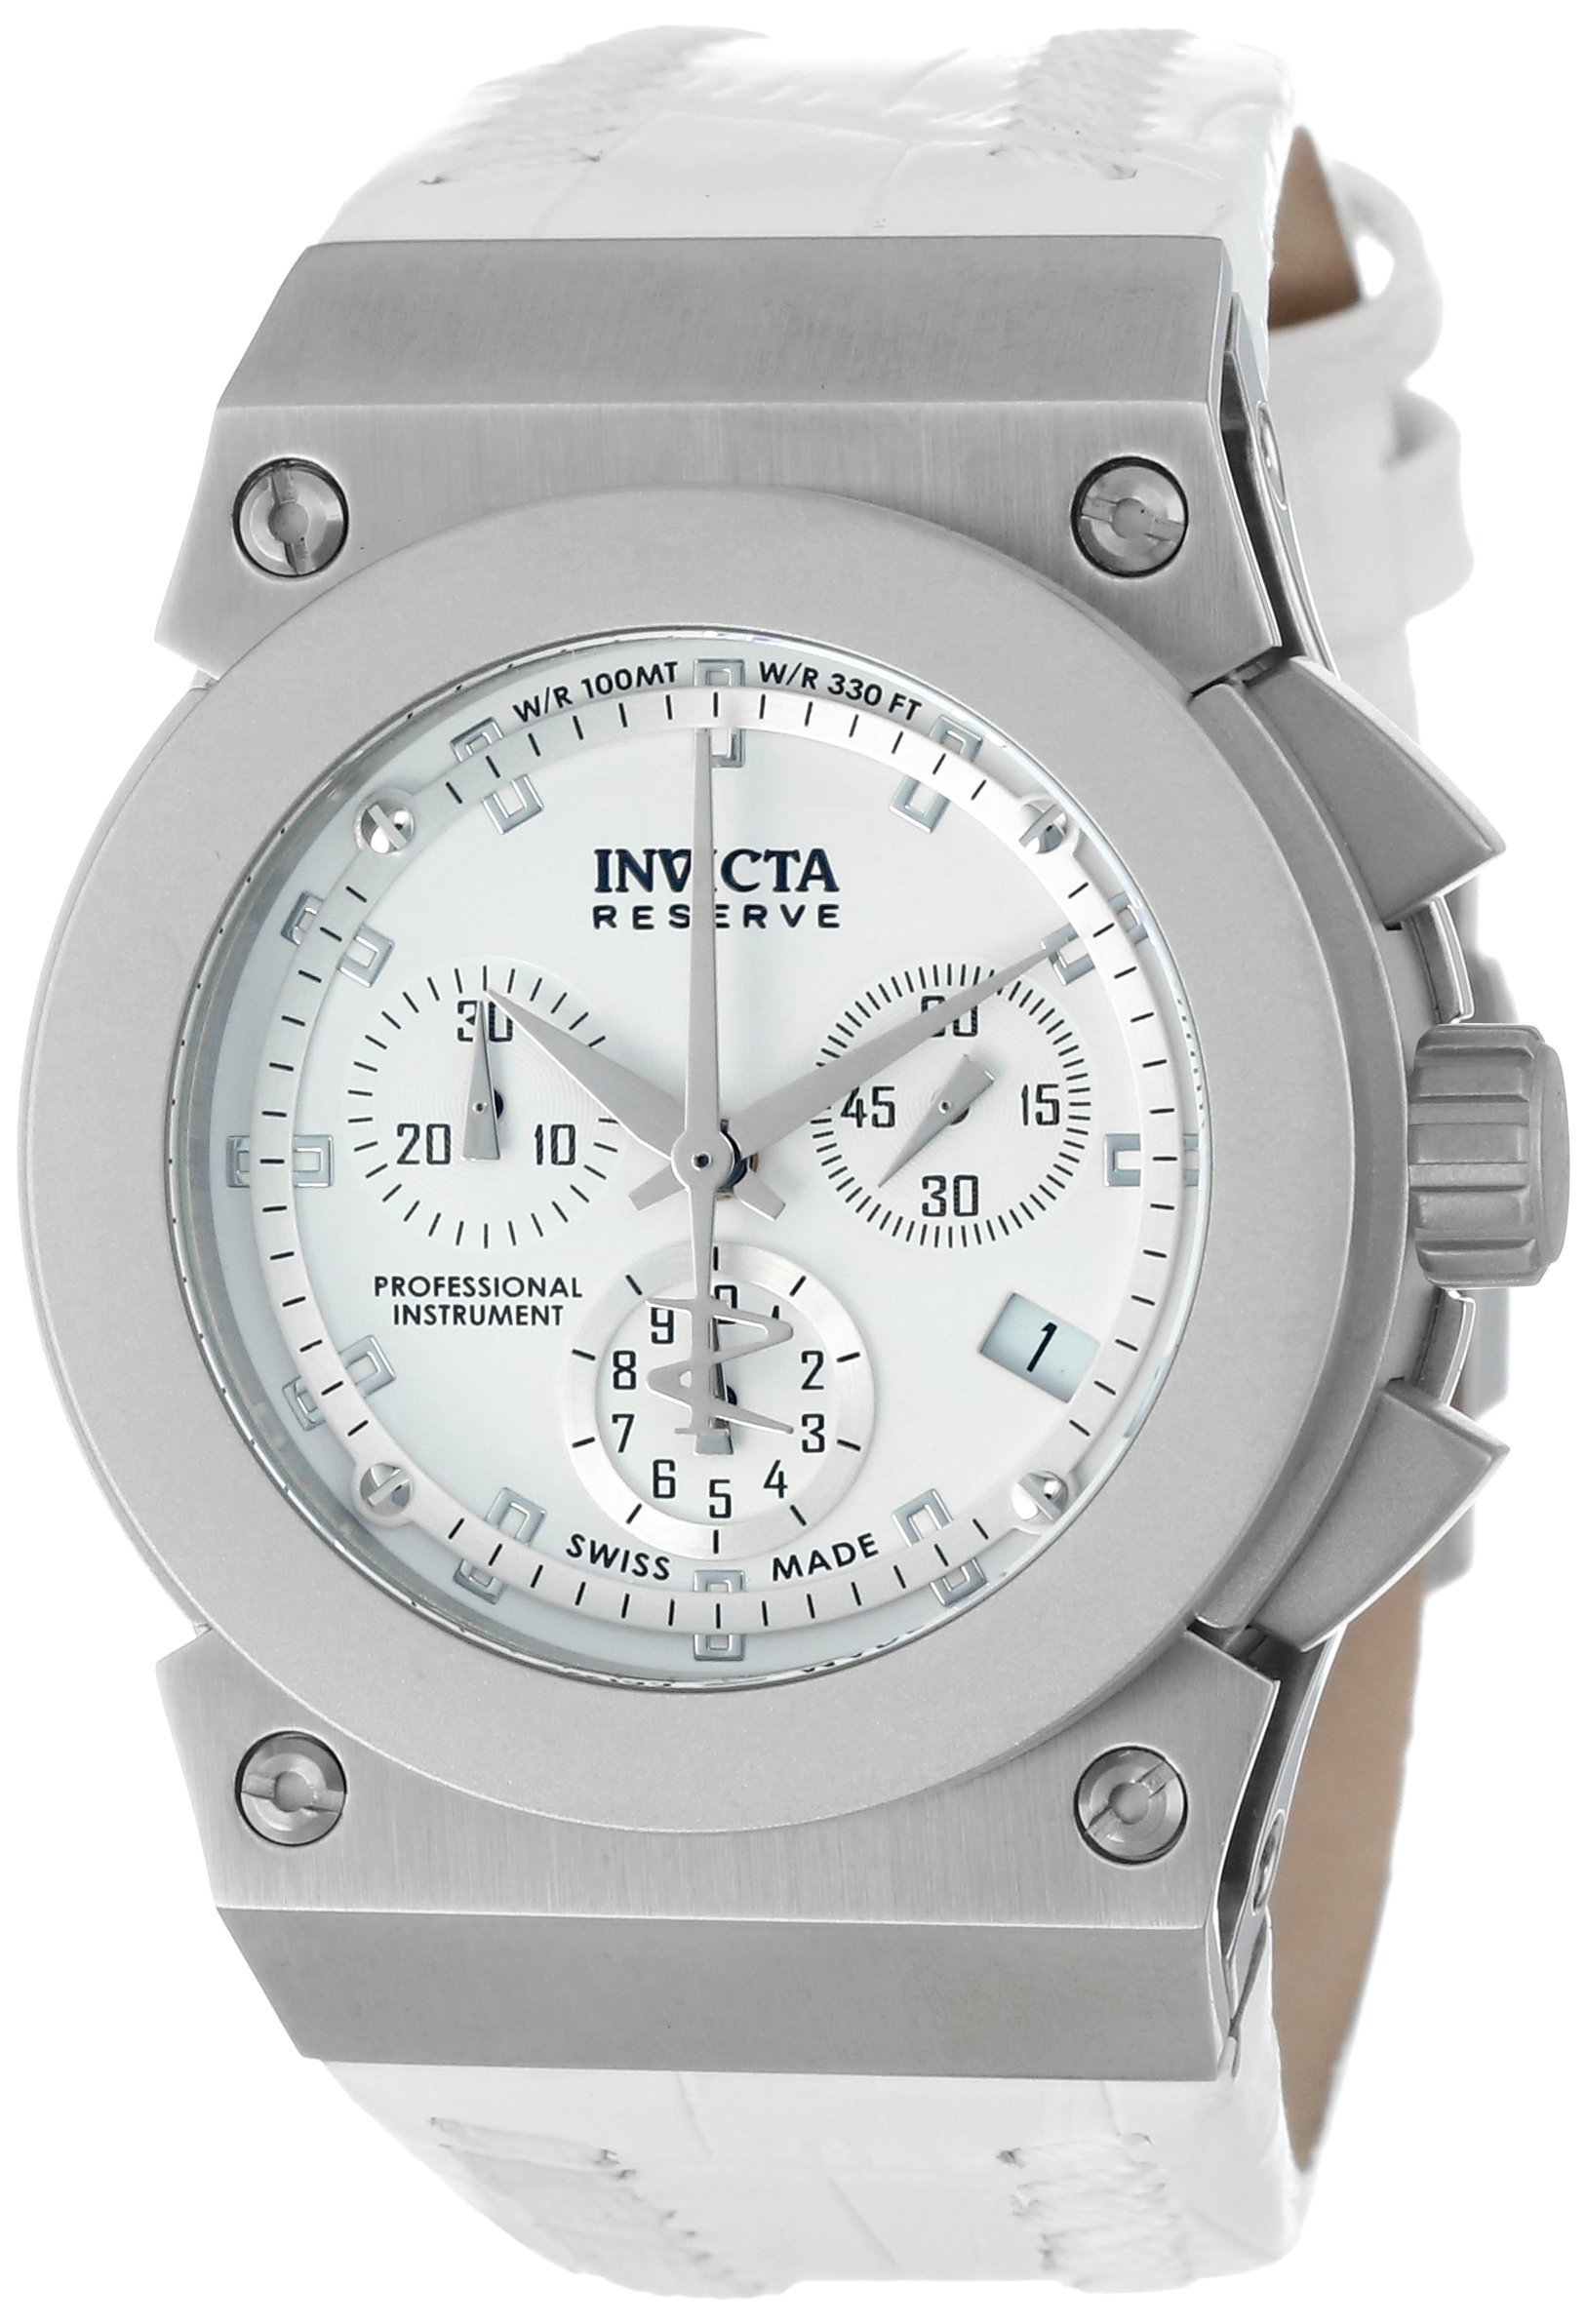 Invicta Women's 5564 Reserve Collection Akula Chronograph White Leather Watch by Invicta